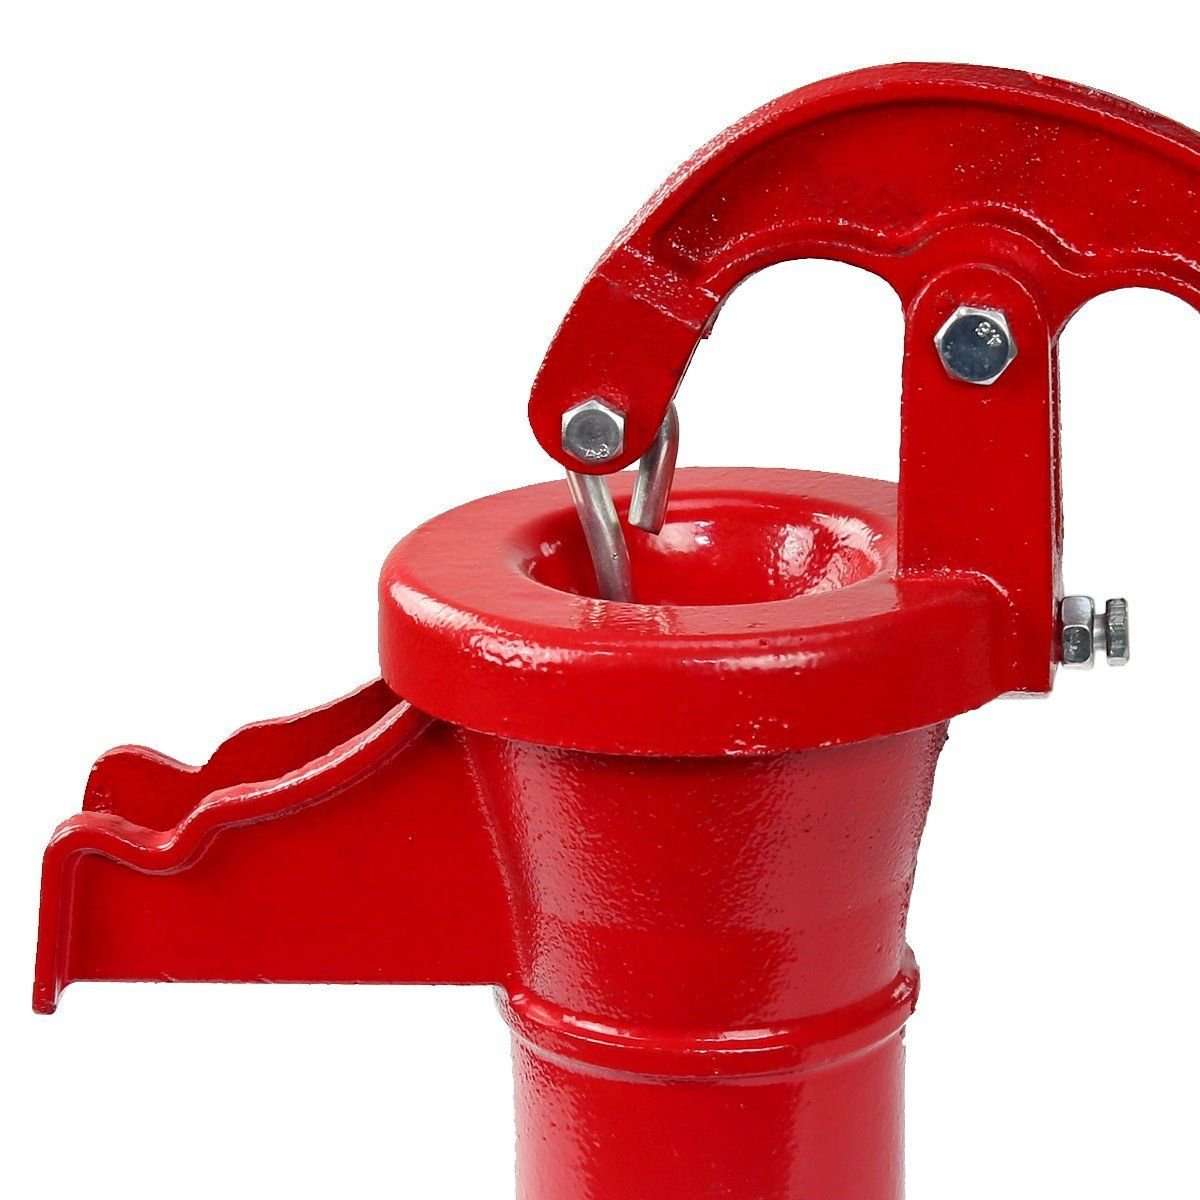 COLIBROX--New Antique Style Heavy Duty Cast Iron Red Well Hand Operated Pitcher Pump 25 Ft. Designed for rugged long life service All parts are made from close grain cast iron for optimum strength. by COLIBROX (Image #3)